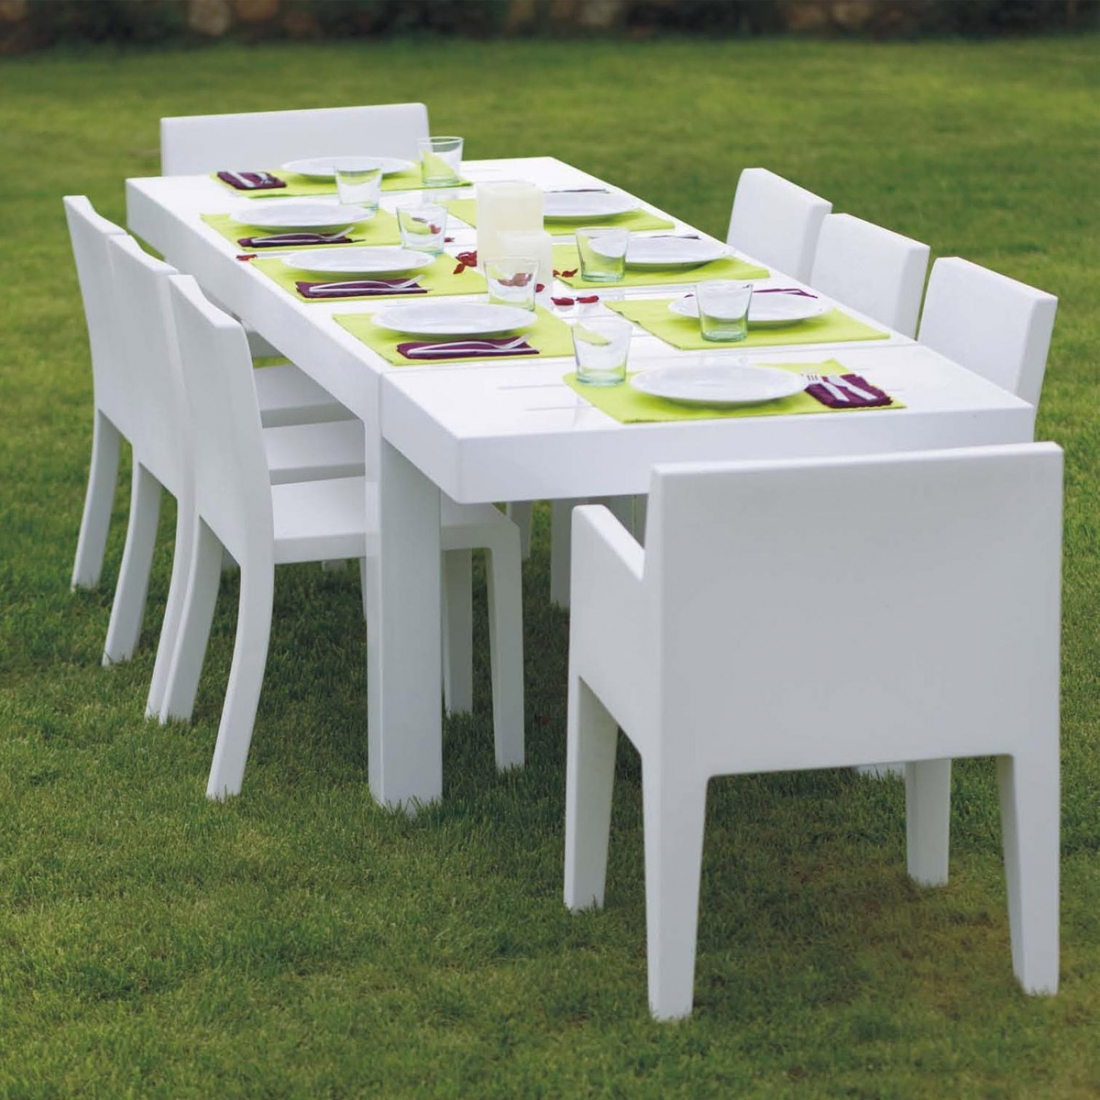 Table de jardin design 10 personnes jut par vondom for Table exterieur 2 personnes